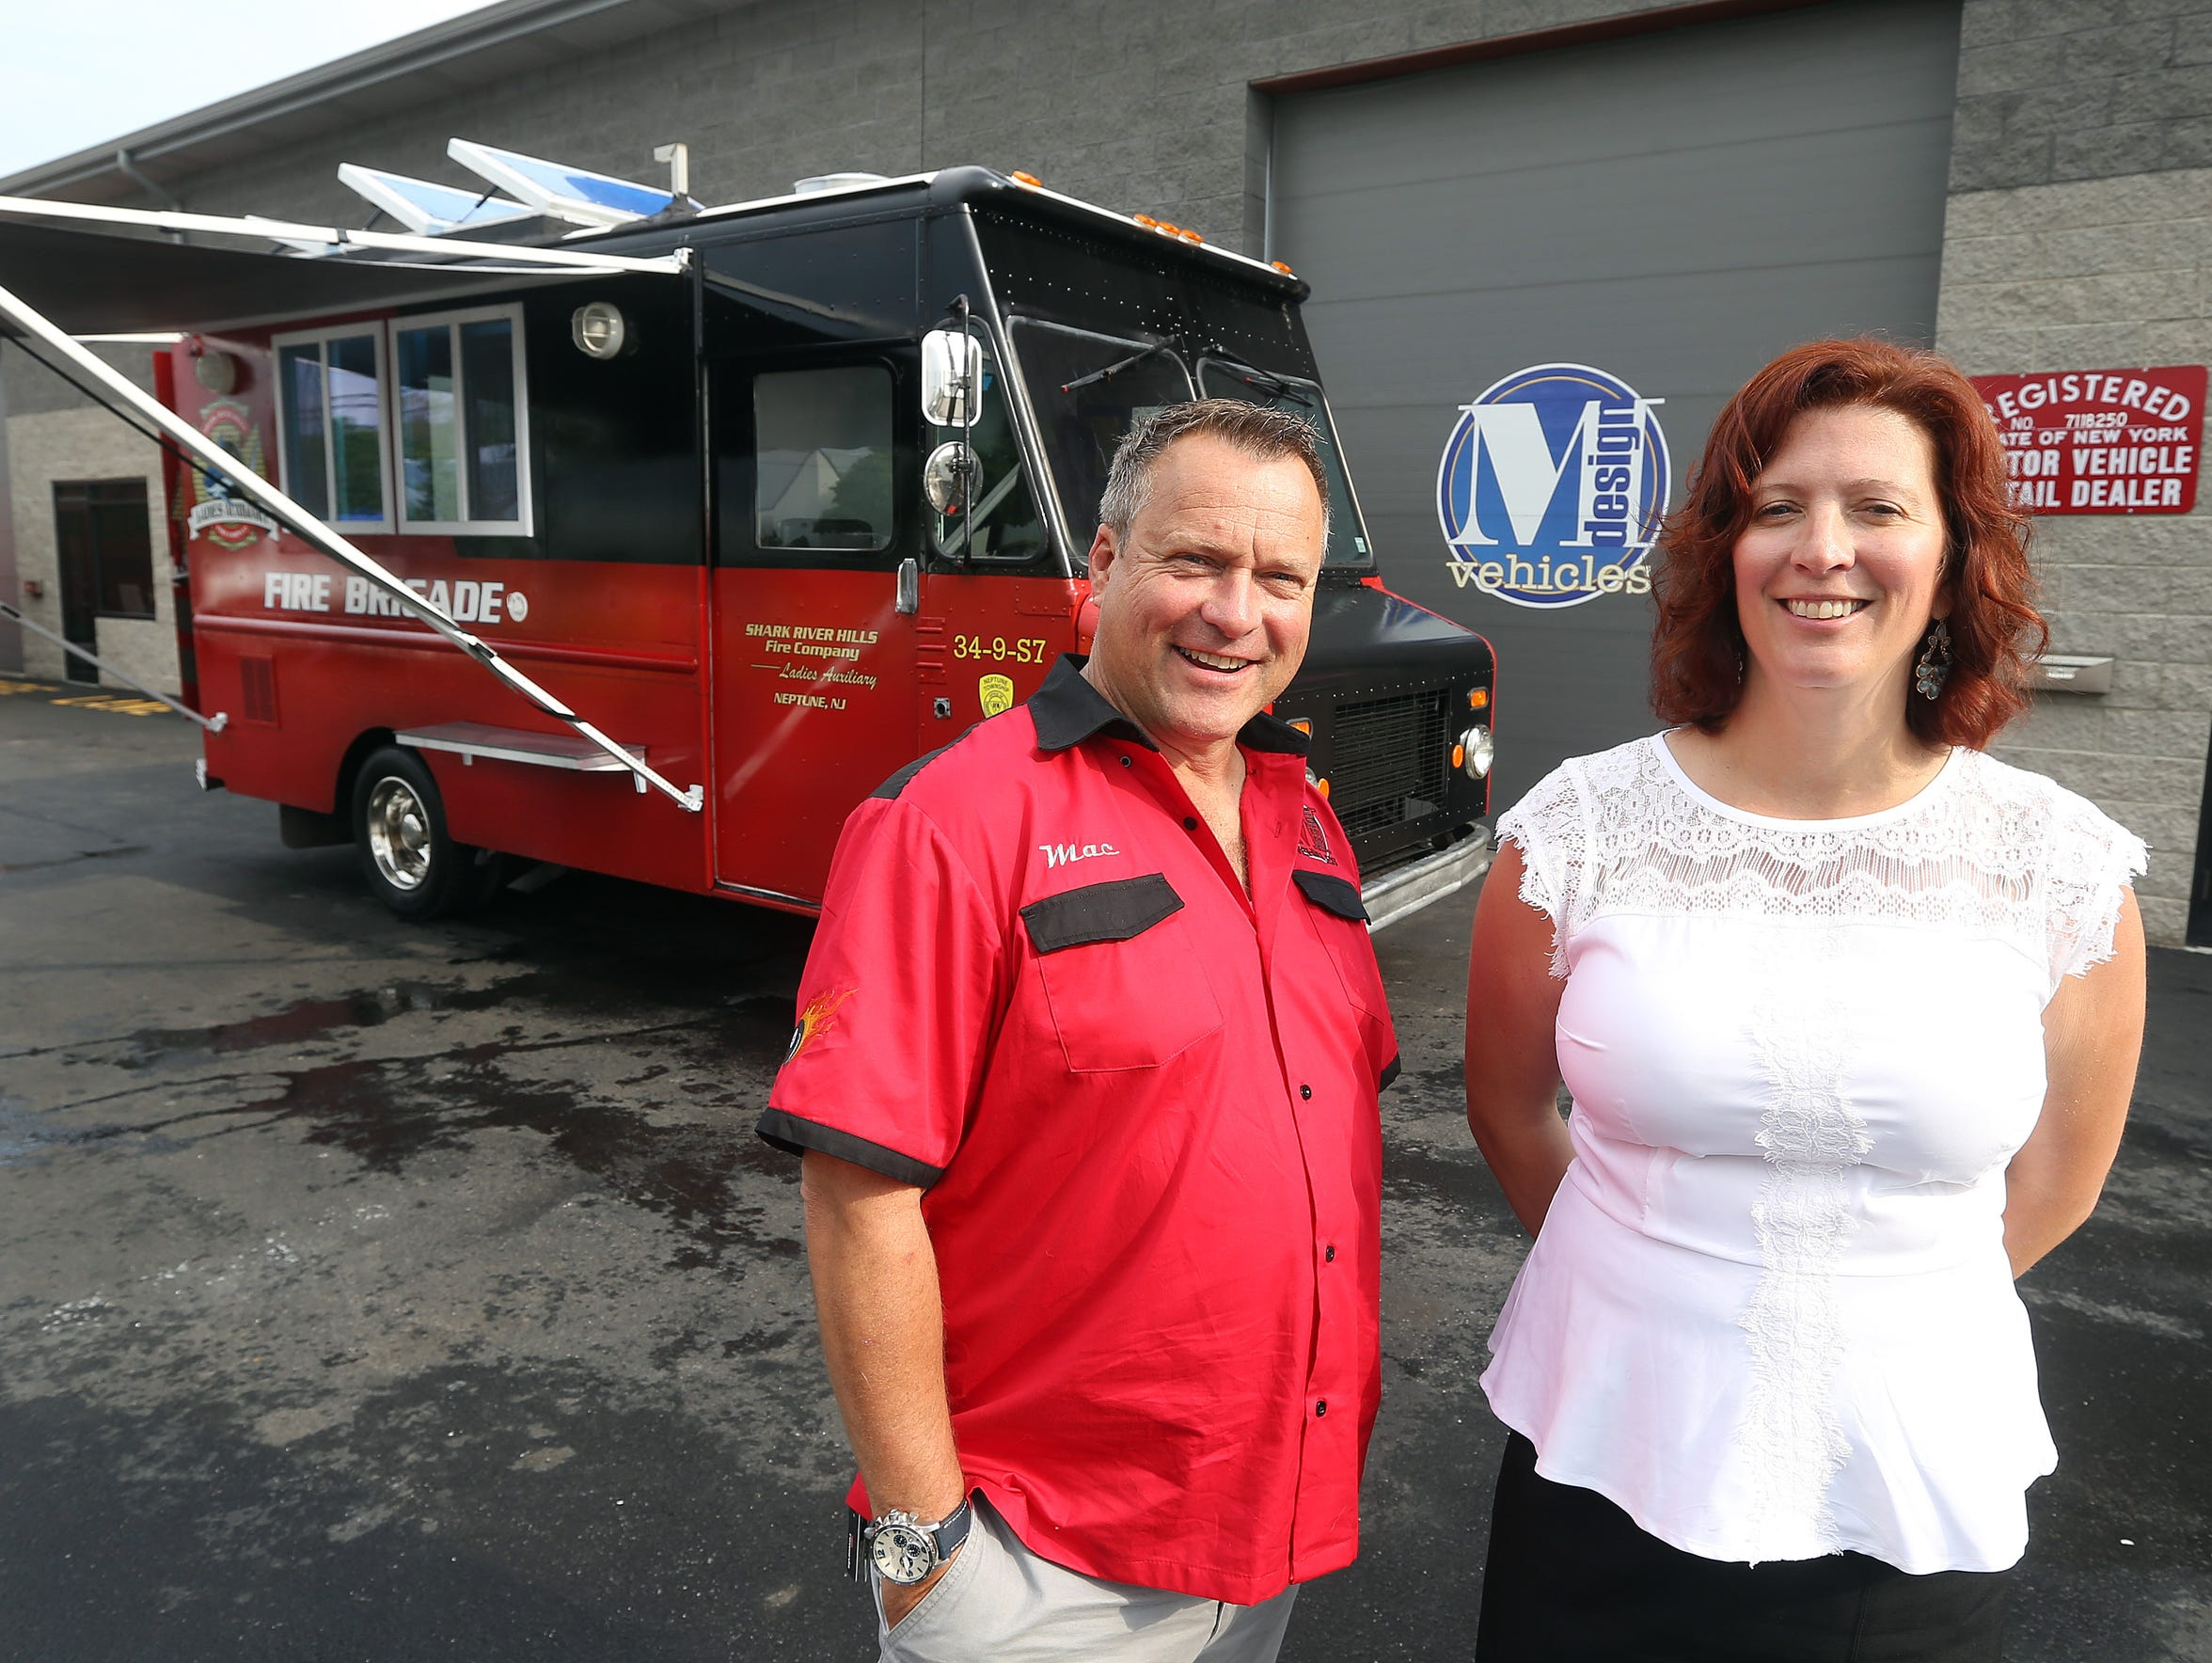 2014 file photo: Ian Macdonald and Maggie Tobin, of M Design Vehicles, with a renovated truck to be delivered to a fire company in New Jersey.